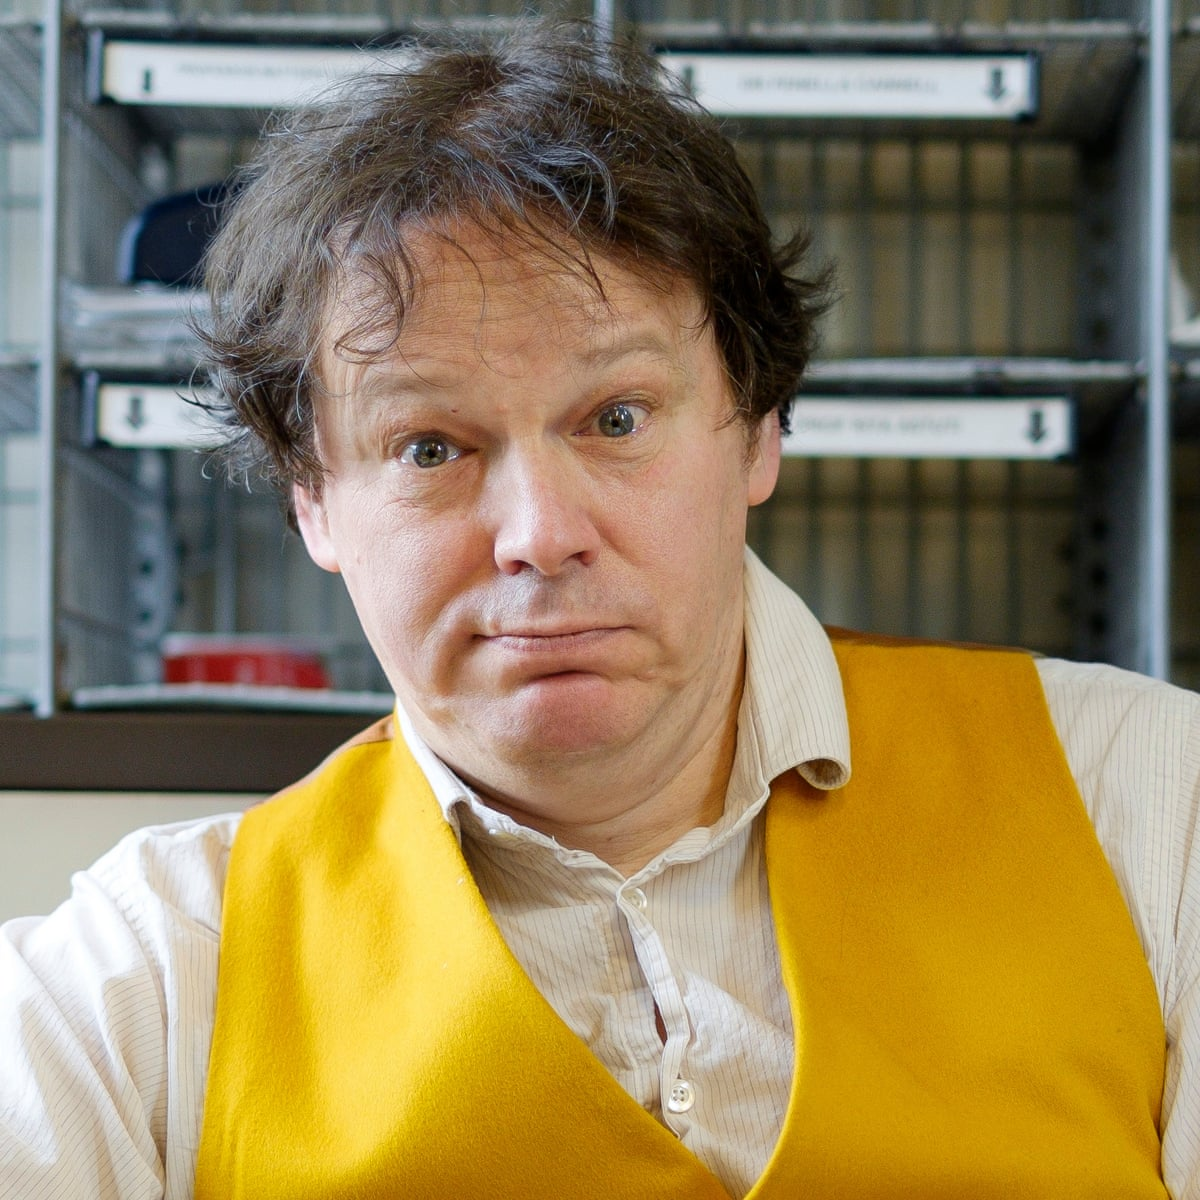 David Graeber, anthropologist and author of Bullshit Jobs, dies aged 59 |  Books | The Guardian